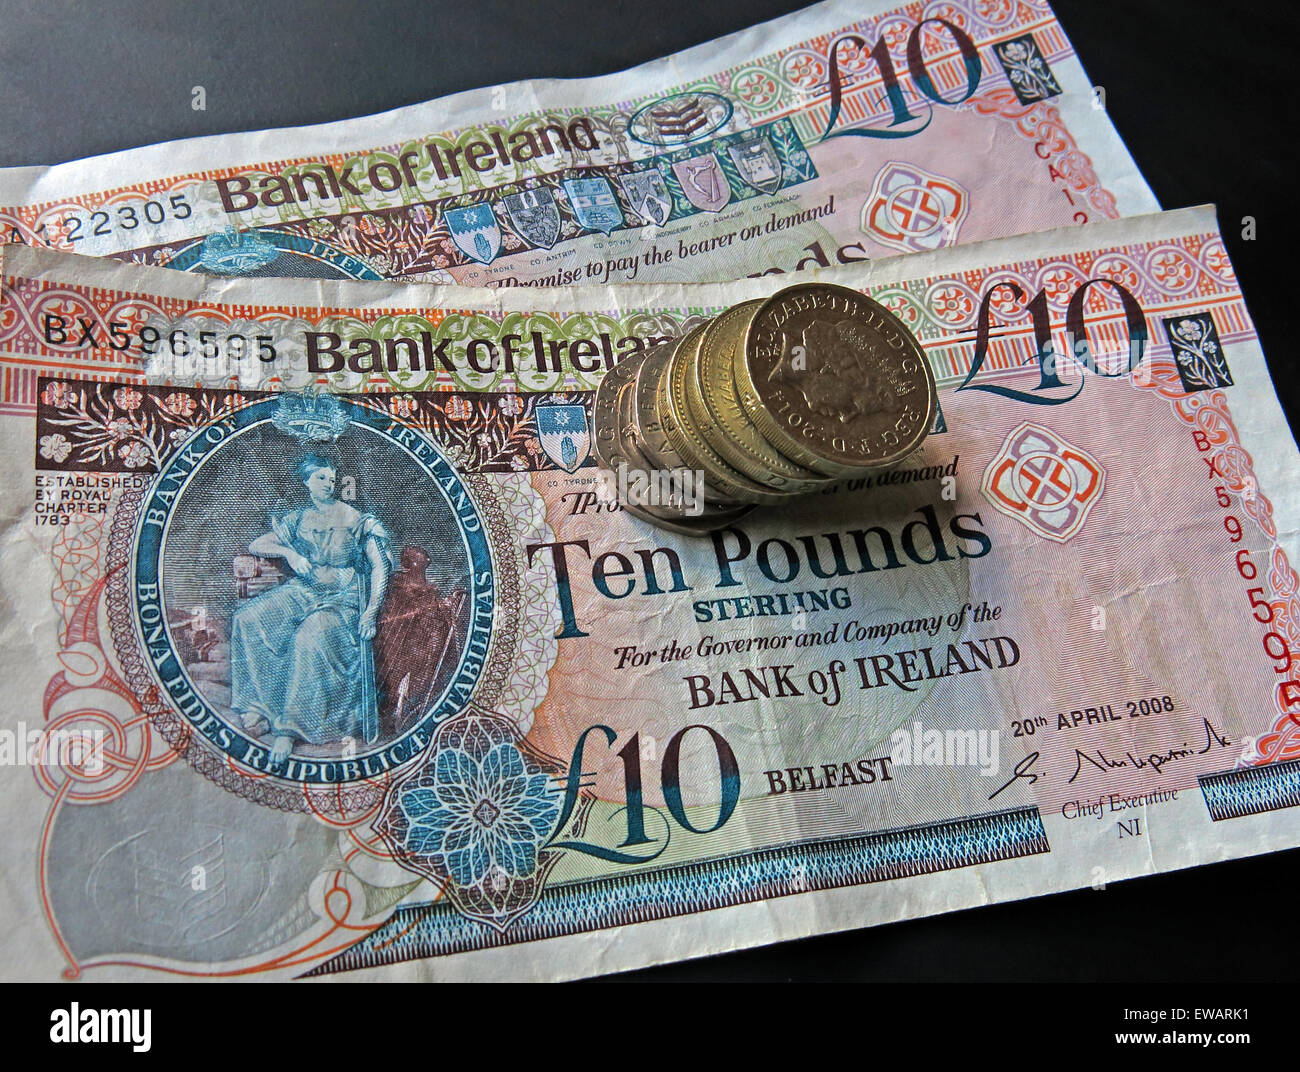 Note,Eire,republic,of,coin,Sterling,legal tender,from the,Bank Of Ireland Belfast,bank,of,Ireland,region,regional,economy,economic,money,monetary,union,UK,United Kingdom,housekeeping,good,bad,currency,wealth,capital,worth,rich,wealthy,fund,funds,ready money,hard cash,ten,five,fiver,GoTonySmith,legal,tender,small,smallest,banks,Europe,european,GB,Great Britain,Great Britain,EC,EU,EEC,hard,cash,ready,Derry,Londonderry,DUP,Sinn Fein,politics,political,tenner,twentypence,twenty,pence,banknote,billetes,bureau,business,buy,buying,caja,change,commerce,commercialism,capitalism,austerity,global,crash,global crash,cuenta,debt,dinero,dollar,enterprise,euro,exchange,export,exporting,global,globalization,historical,history,monetary,negocio,number,paper,paper money,folding,power,saving,spending,profit,prosperity,prosperous,queen,rate,spend,spending,system,trade,viajar,vintage,wealth,world,bailout,bail out,bail,out,six counties,6,six,county,counties,Buy Pictures of,Buy Images Of